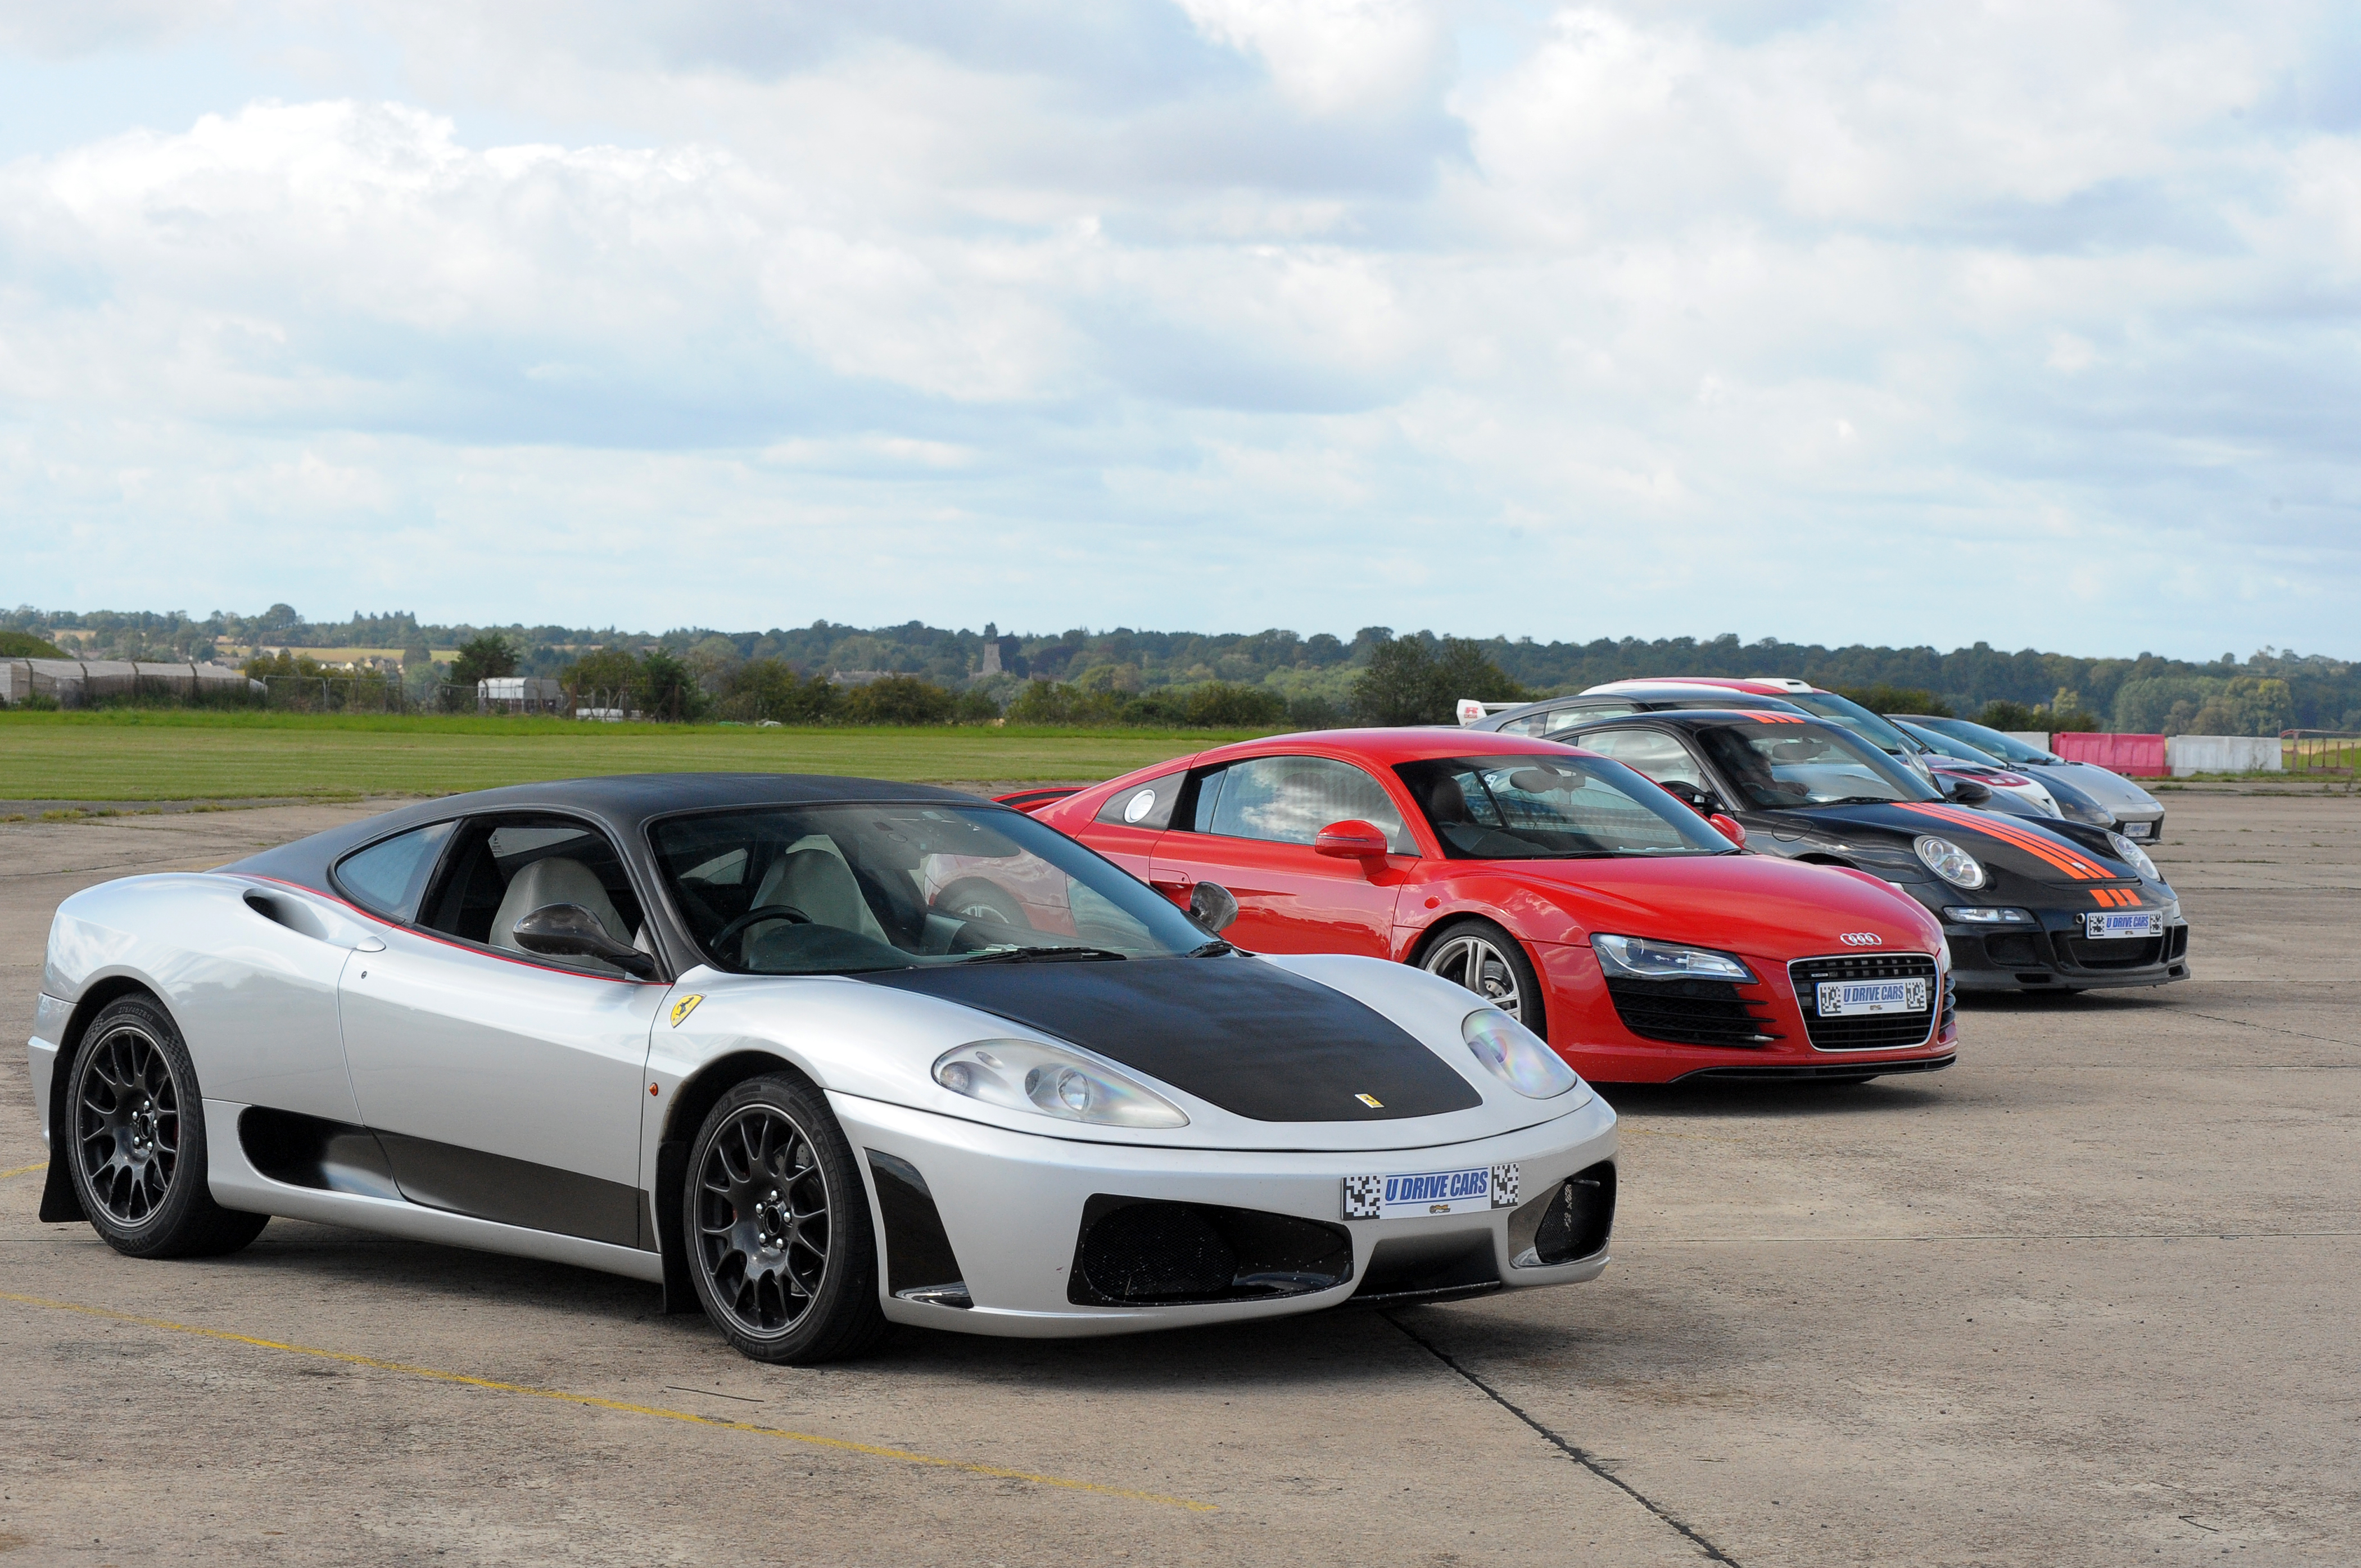 Super cars line up.jpg